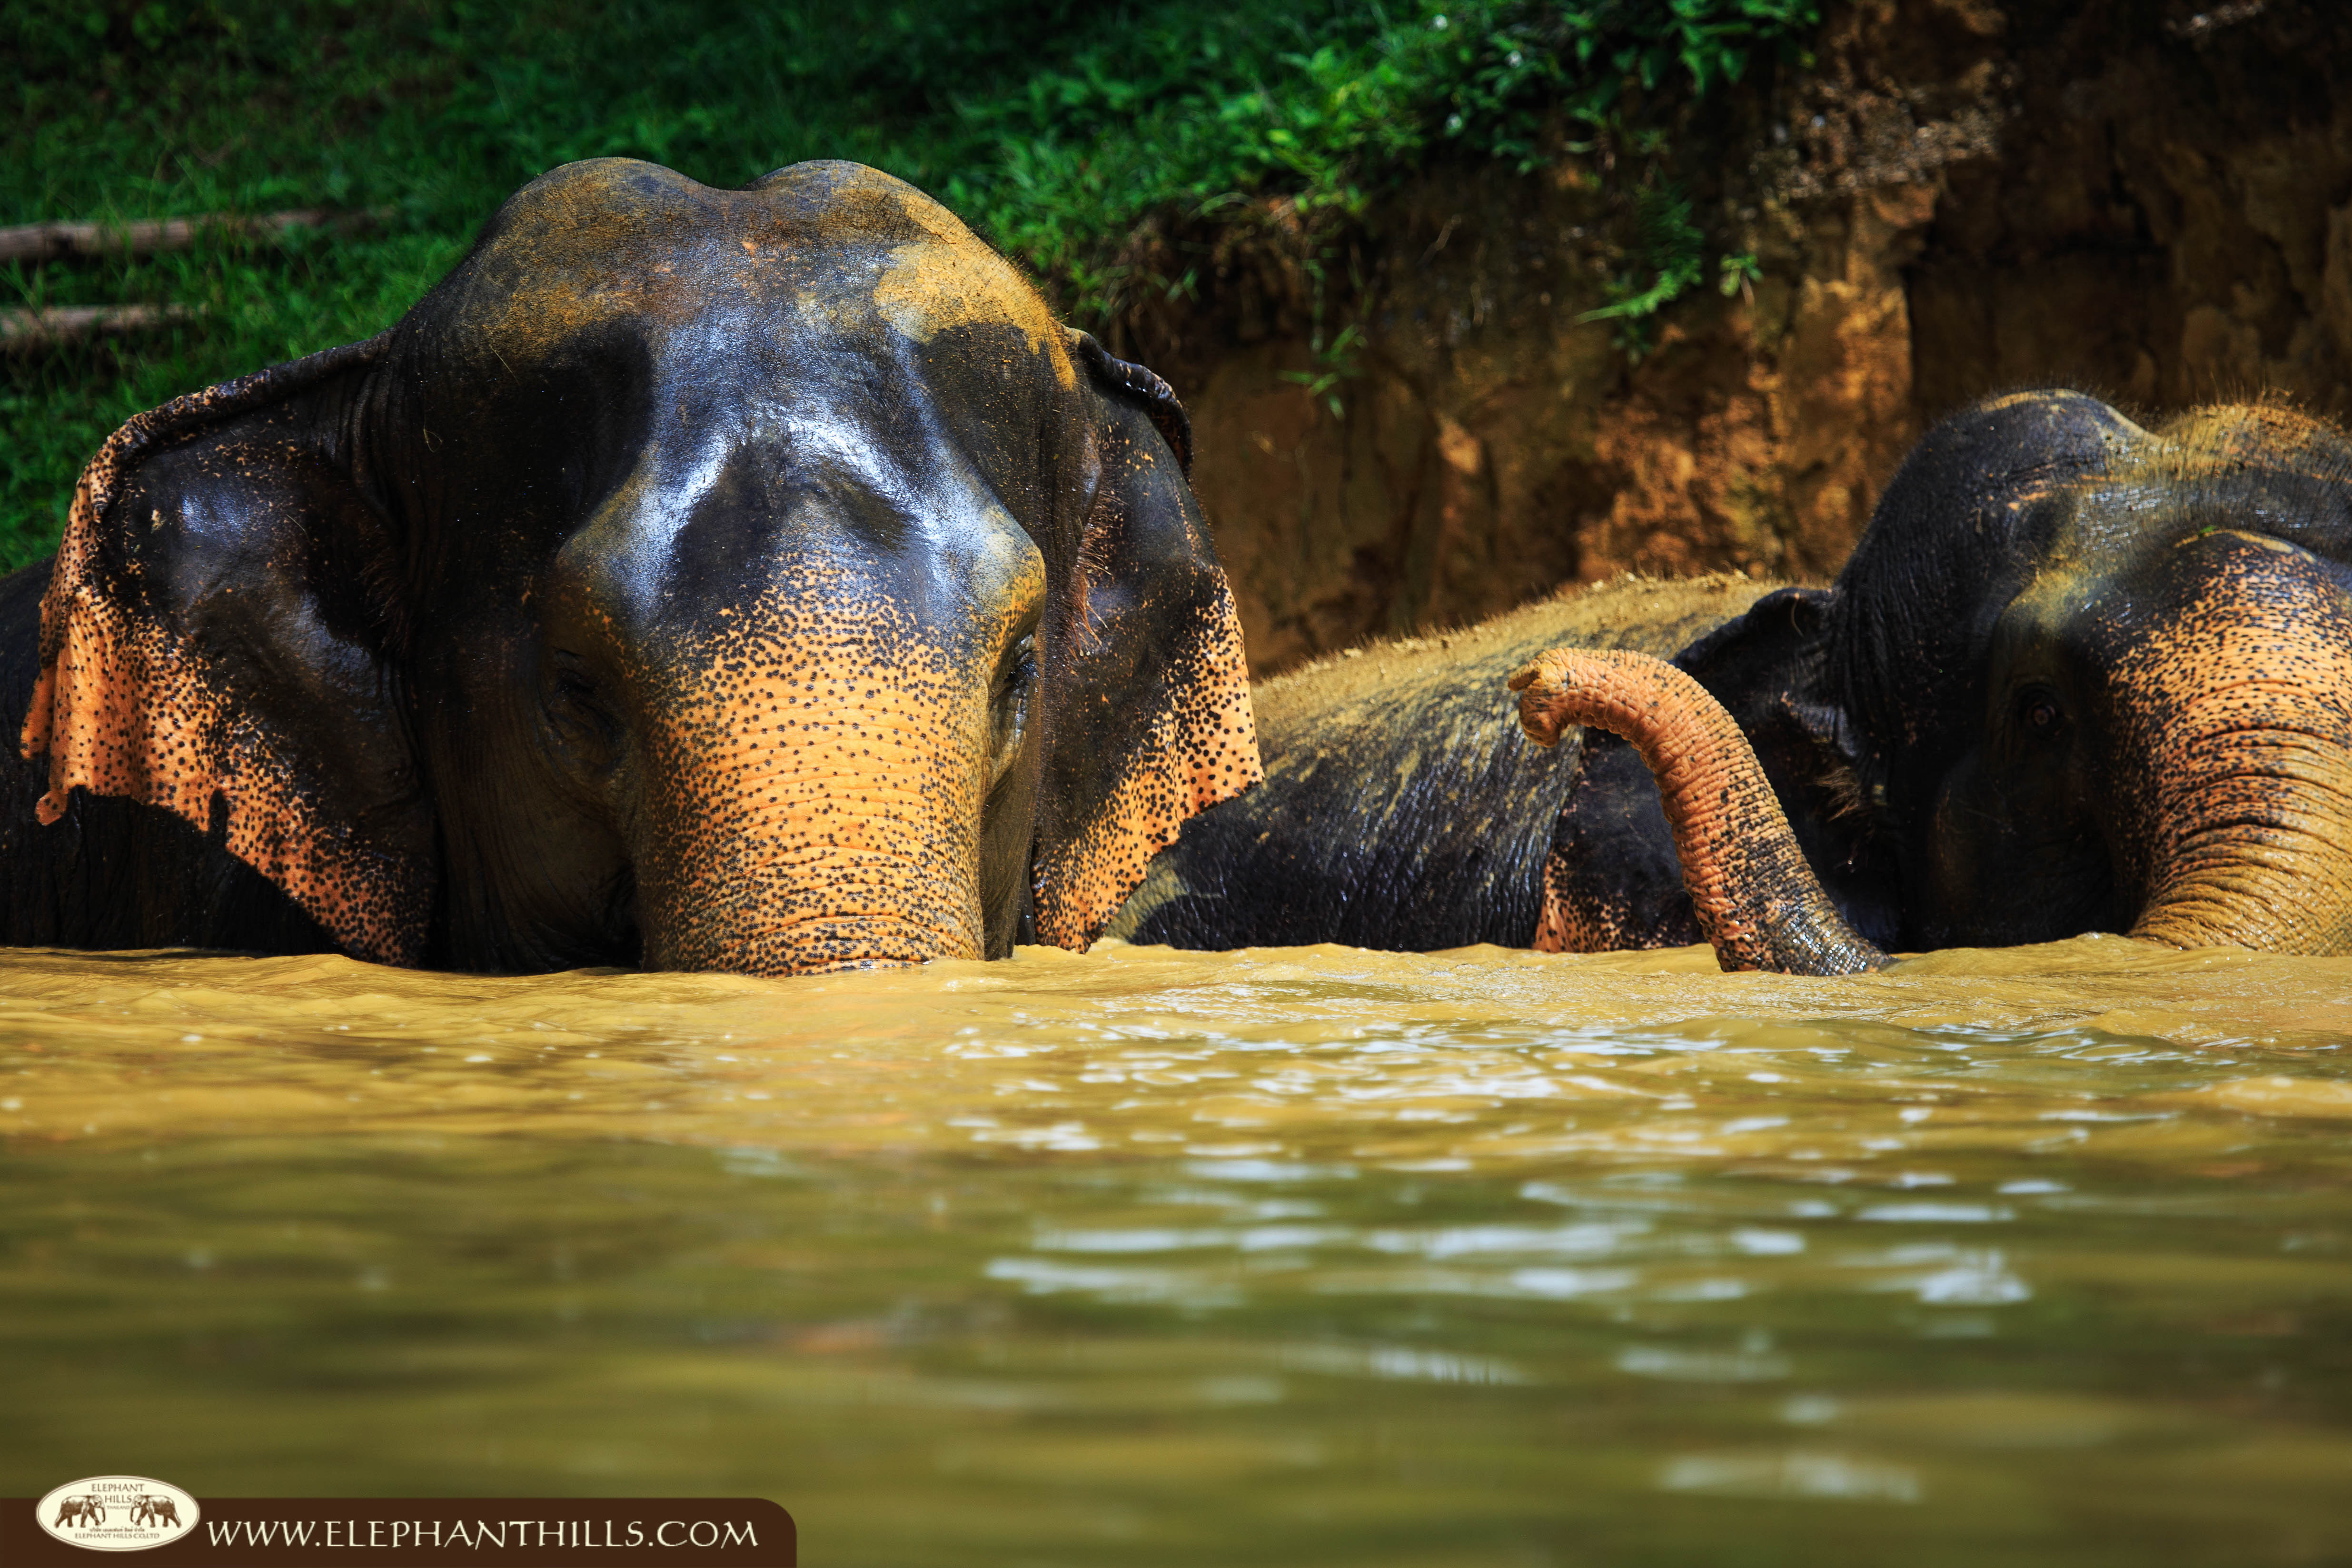 The elephants are enjoy swimming in the pool at Elephant Hills